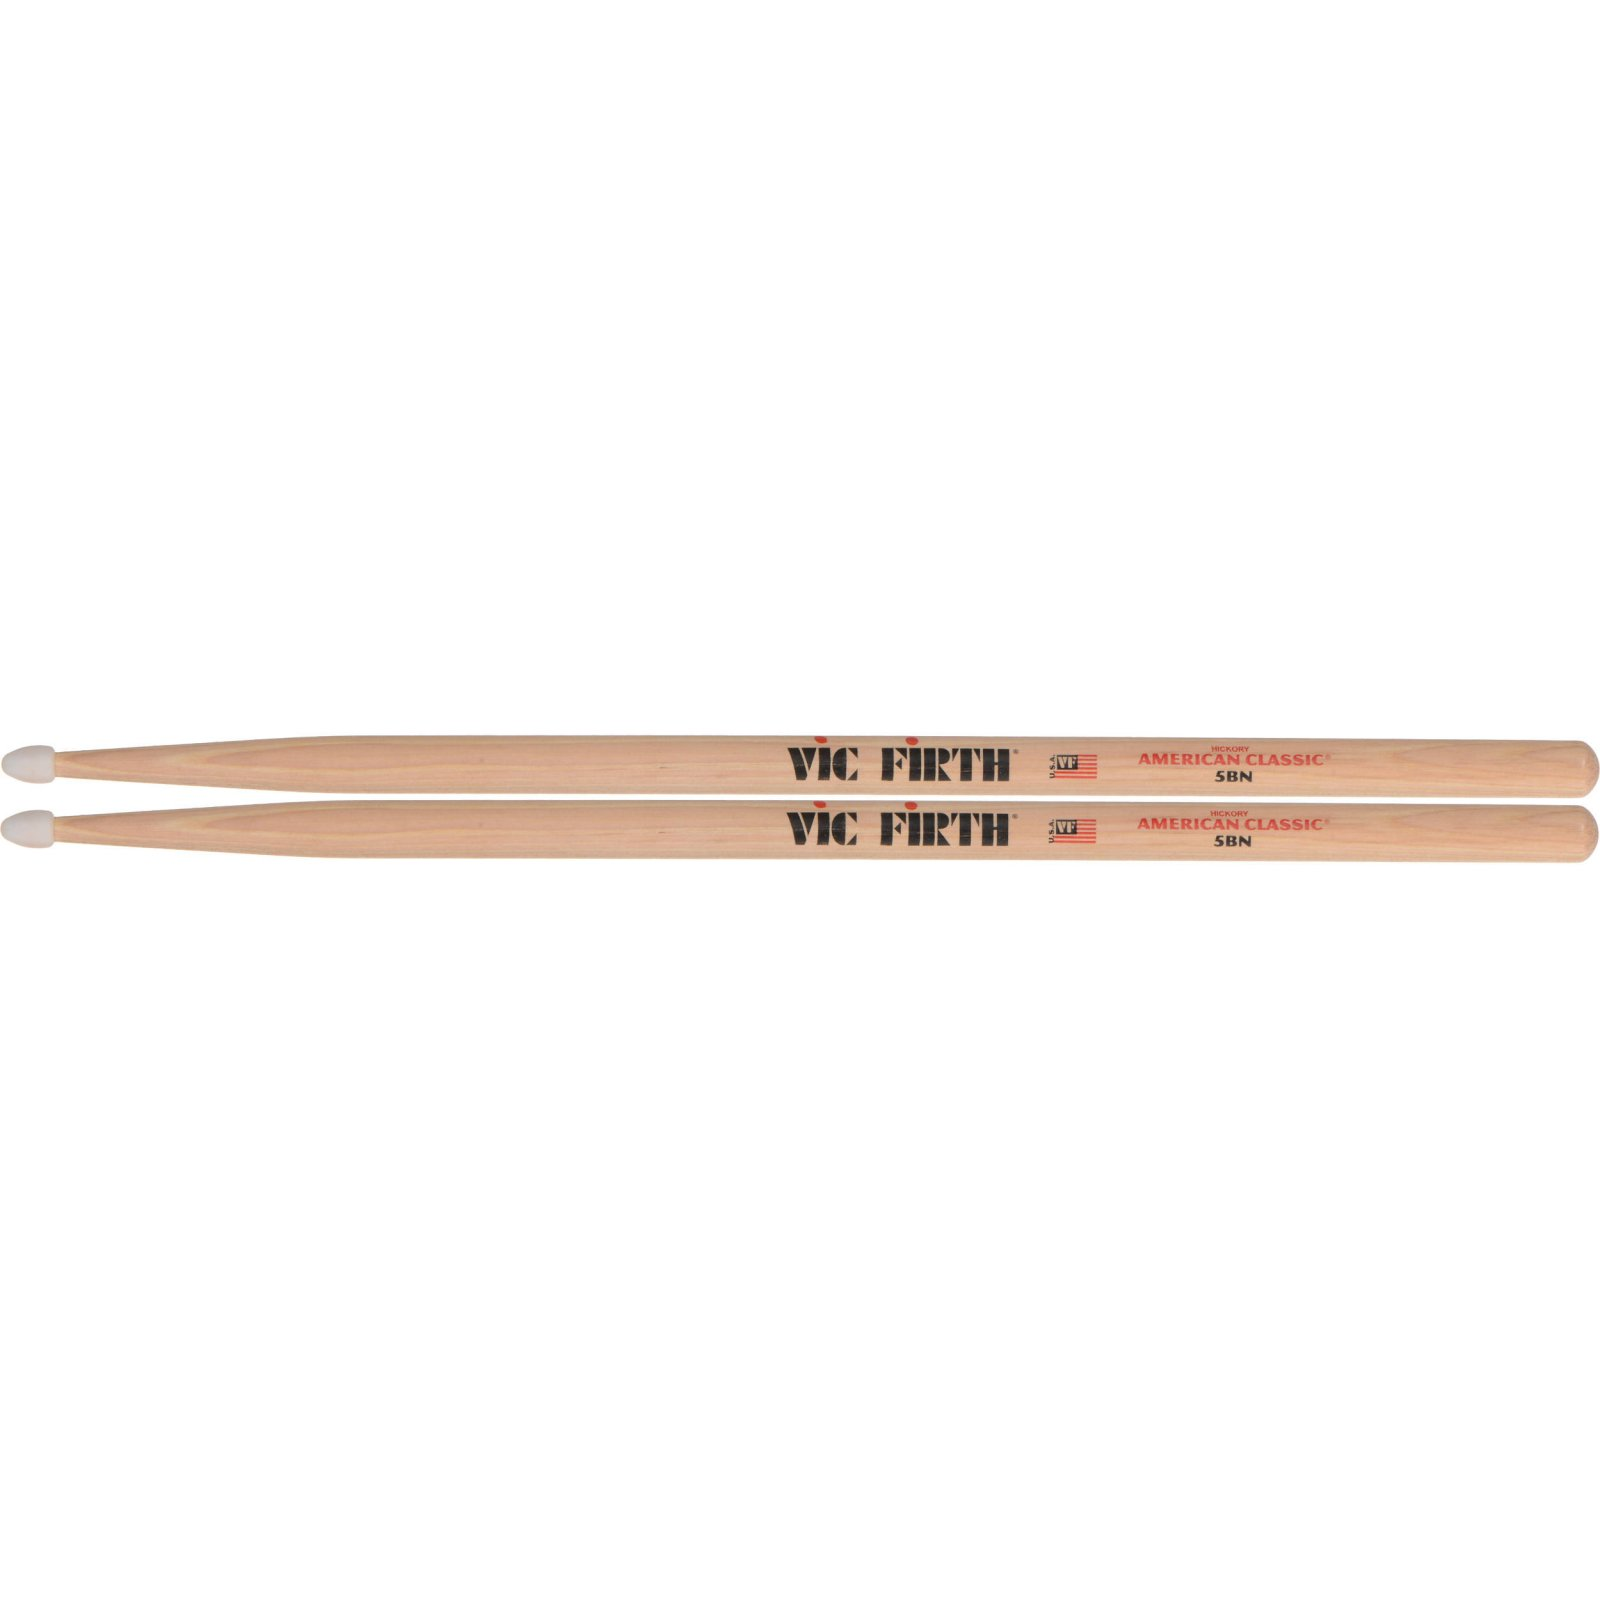 VIC FIRTH DRUMSTICKS 5BN CLASSIC NYLON TIP